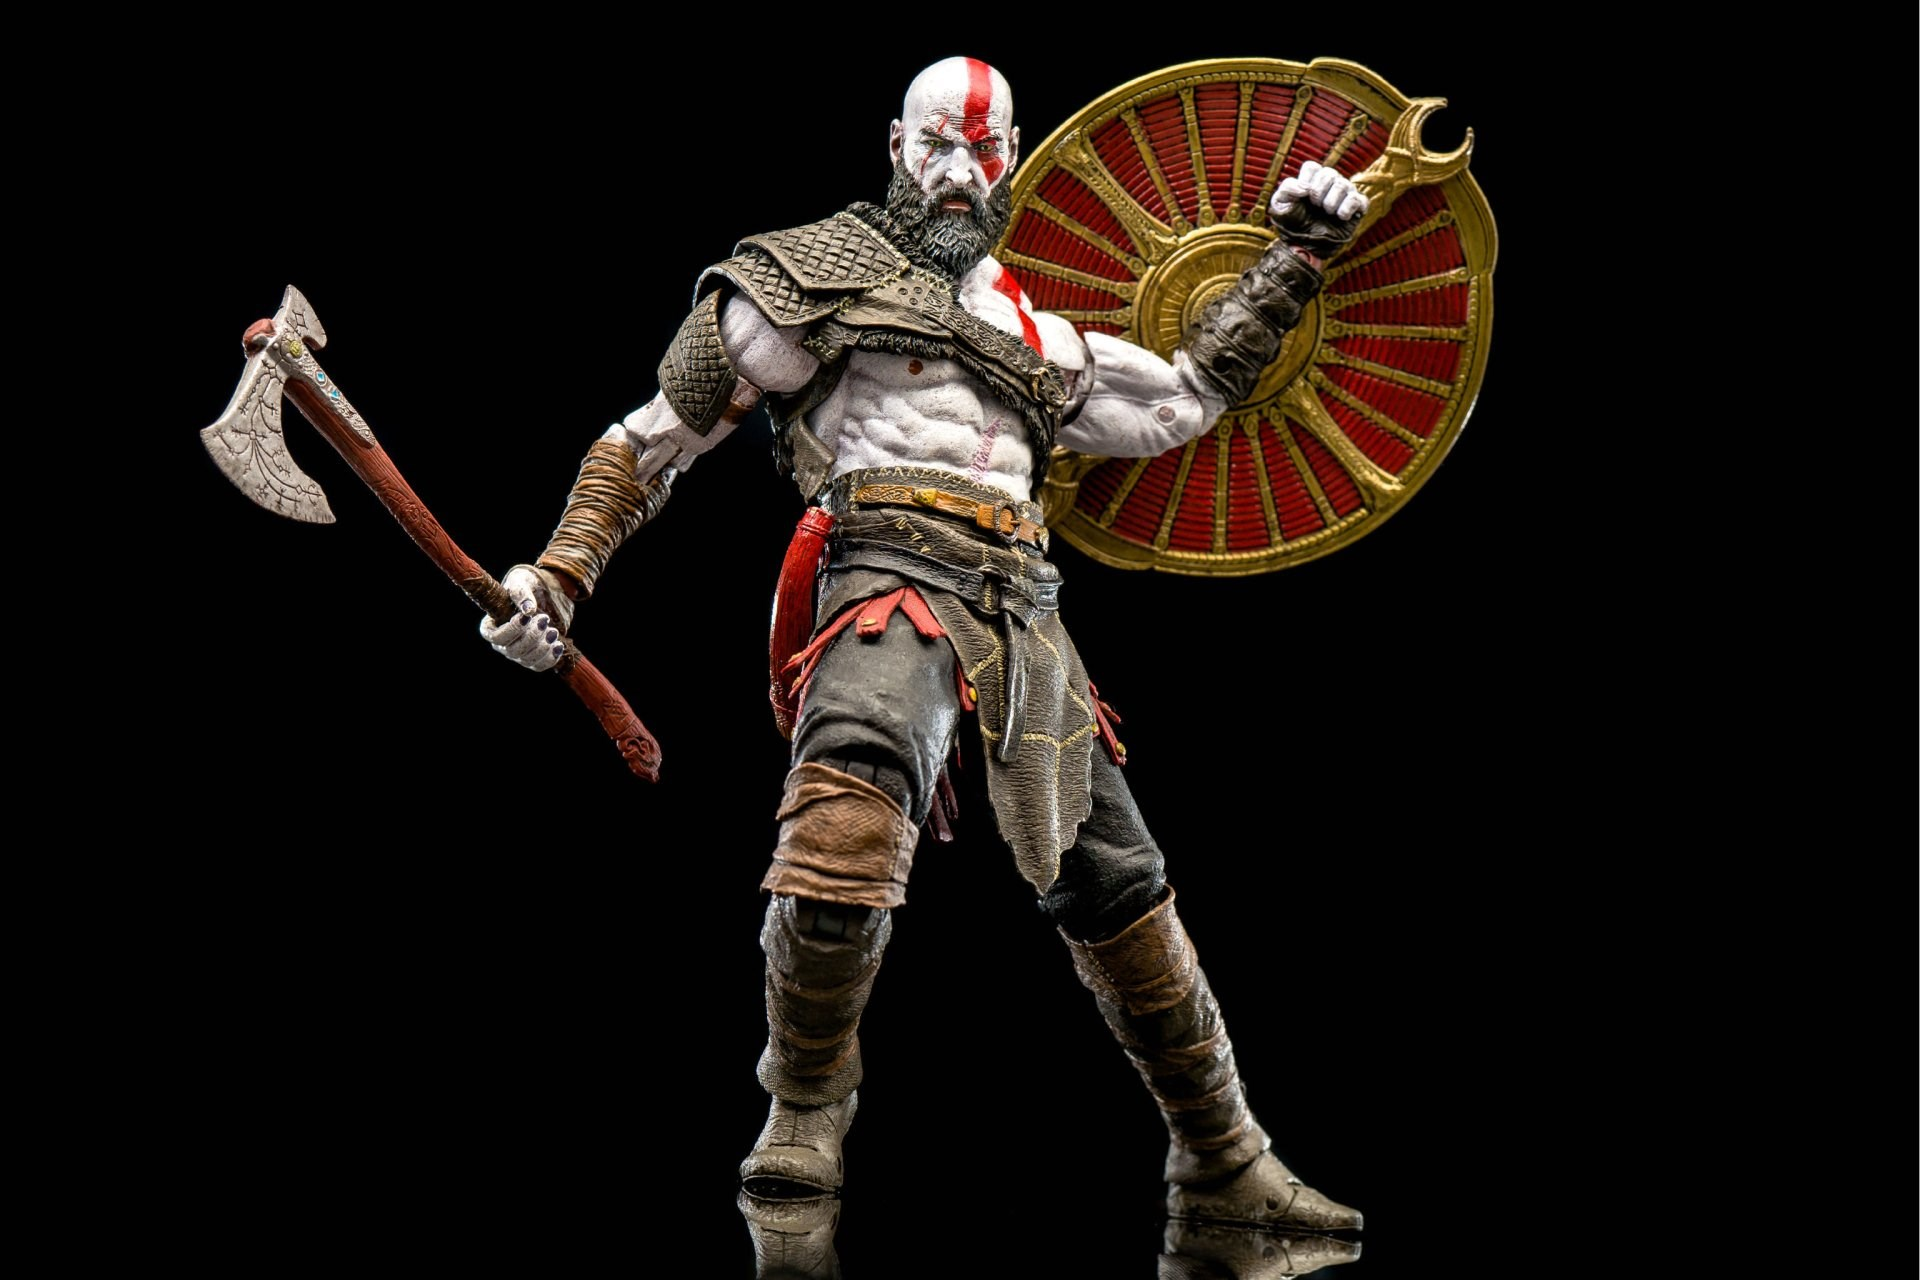 God Of War Live Wallpapers Free Download Kratos Weapons